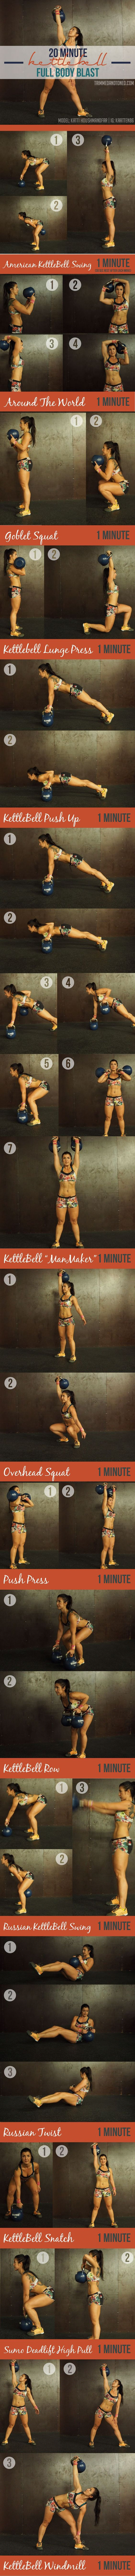 20 Minute Full Body Fat Loss Kettlebell Workout Circuit! Find more like this at…